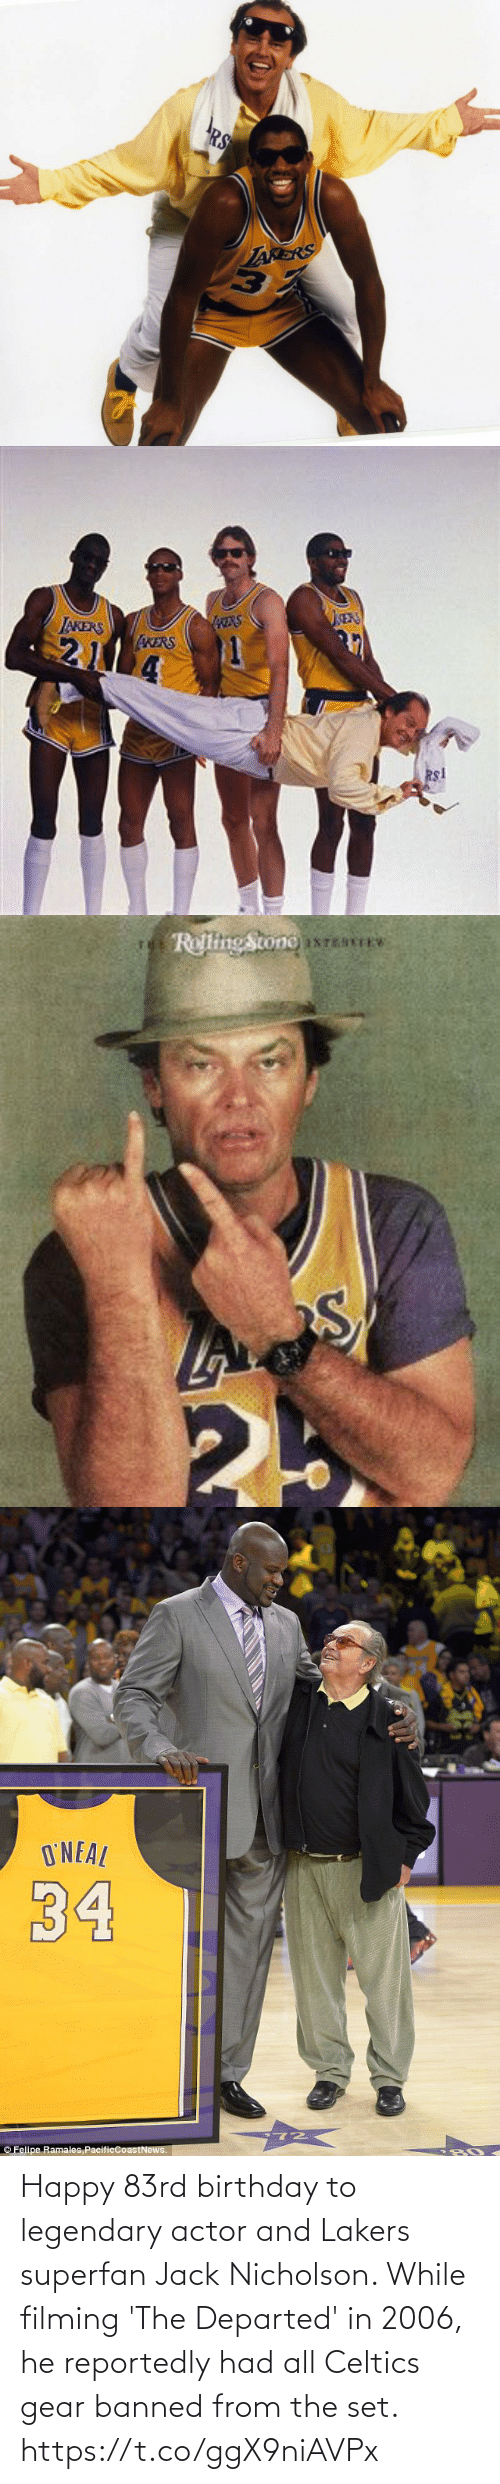 set: Happy 83rd birthday to legendary actor and Lakers superfan Jack Nicholson.   While filming 'The Departed' in 2006, he reportedly had all Celtics gear banned from the set. https://t.co/ggX9niAVPx